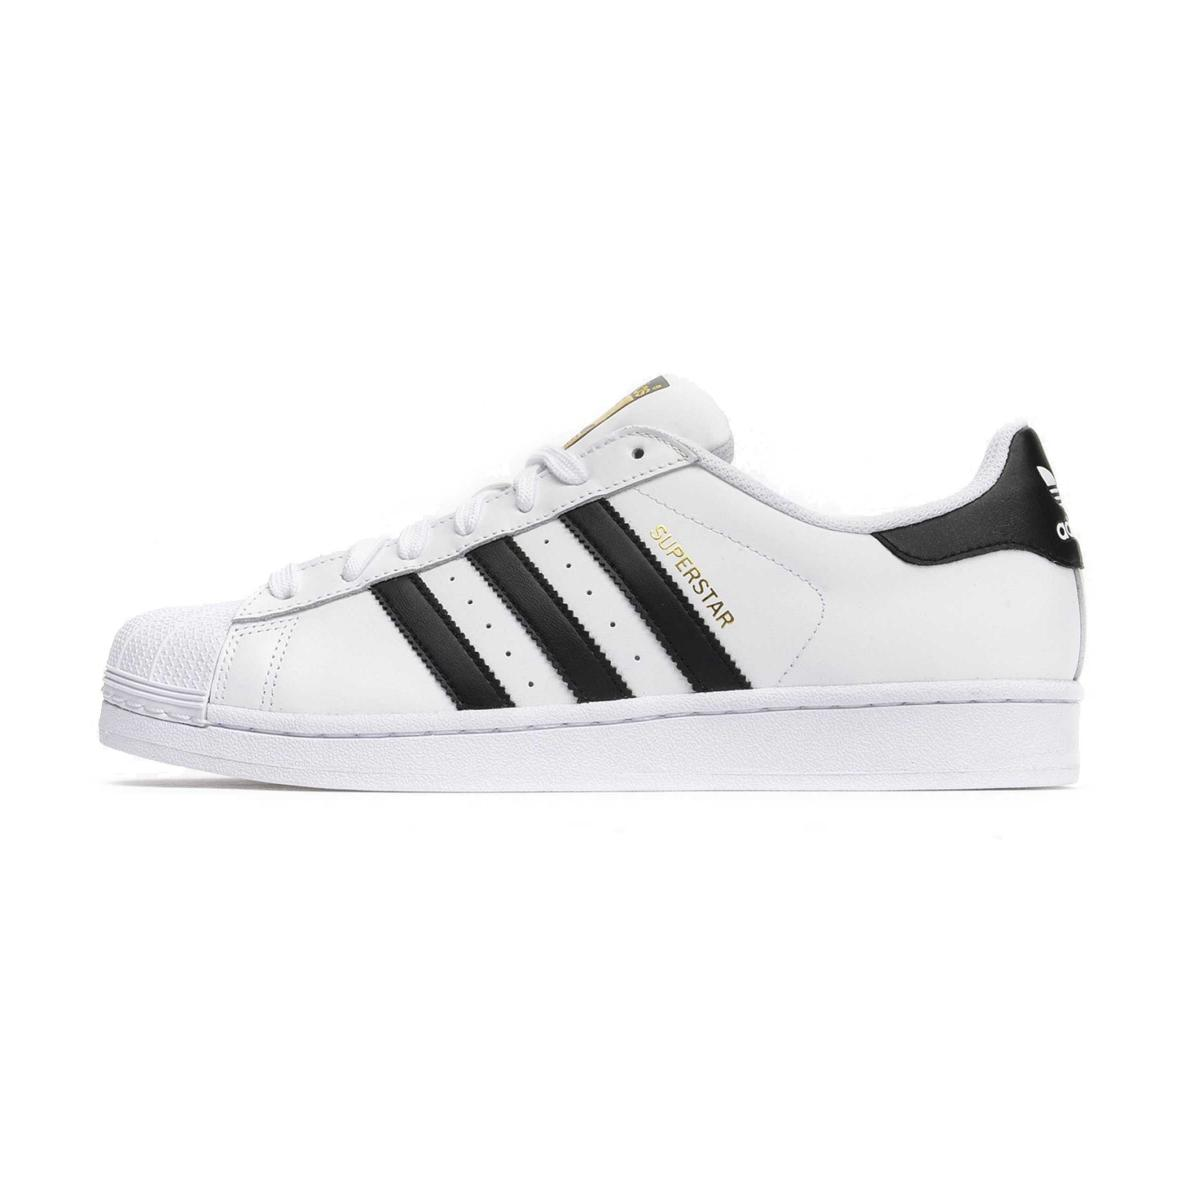 adidas donna scarpe sneakers bianche